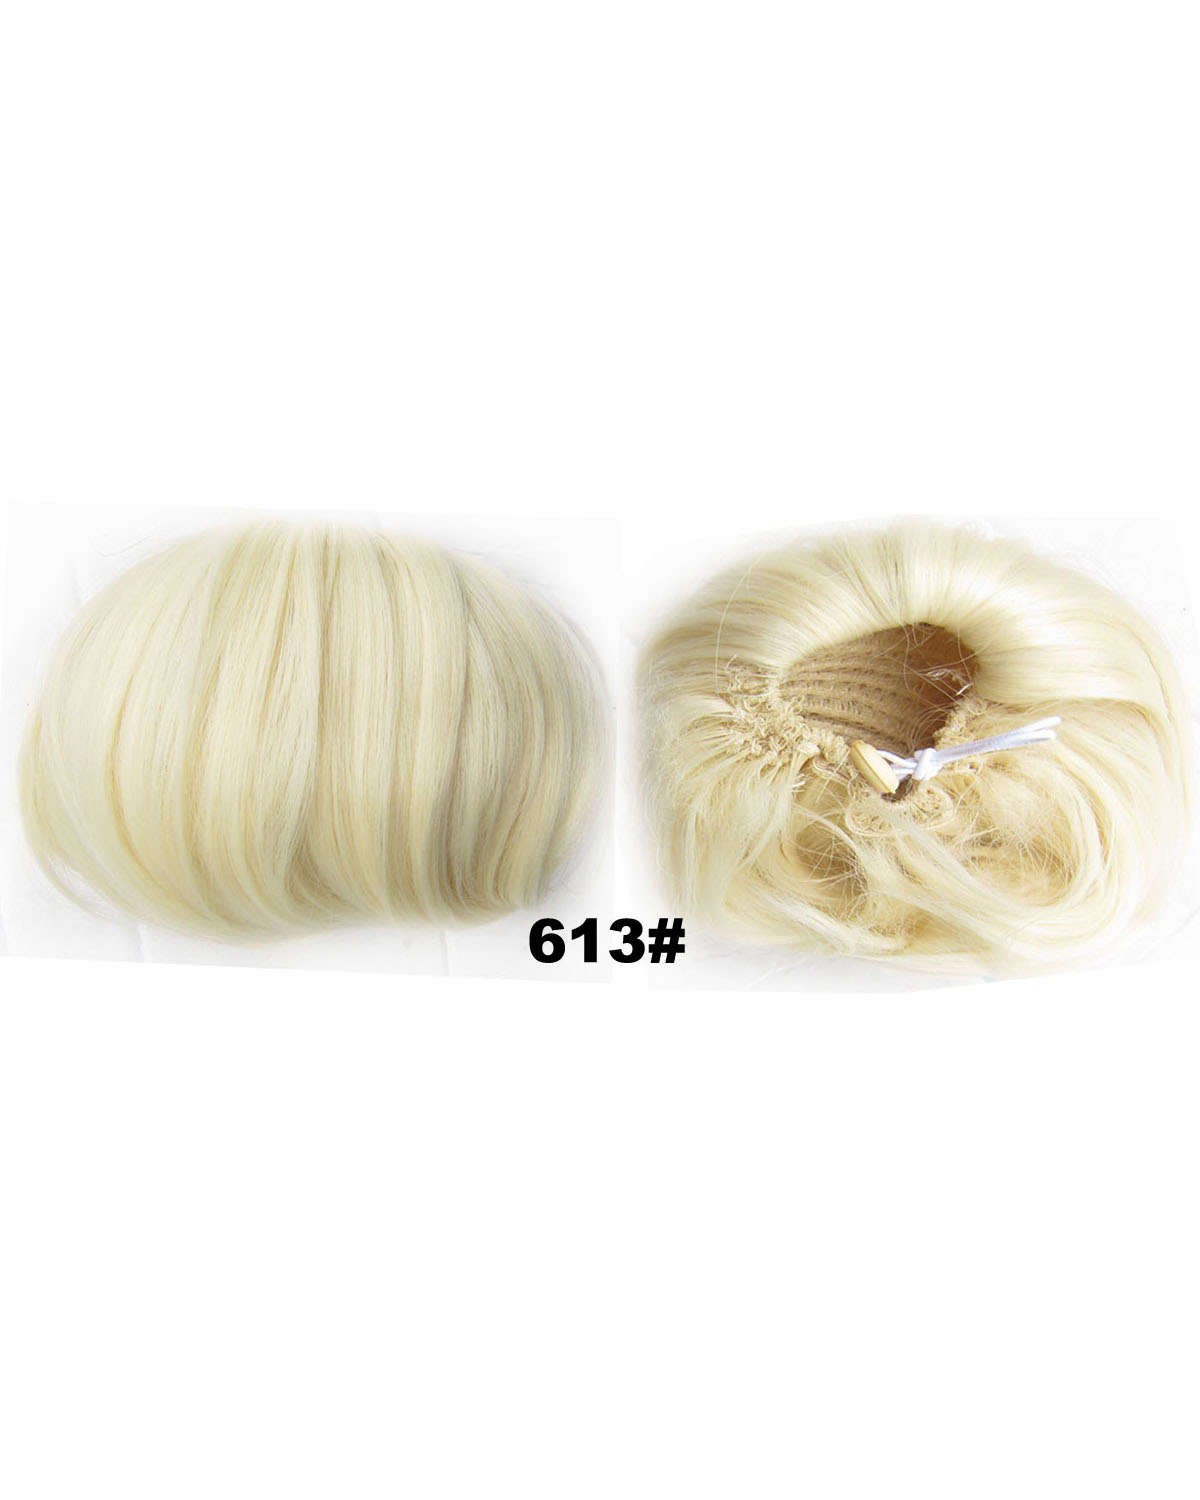 Ladies Faddish Straight Short Hair Buns Drawstring Synthetic Hair Extension Bride Scrunchies  613#